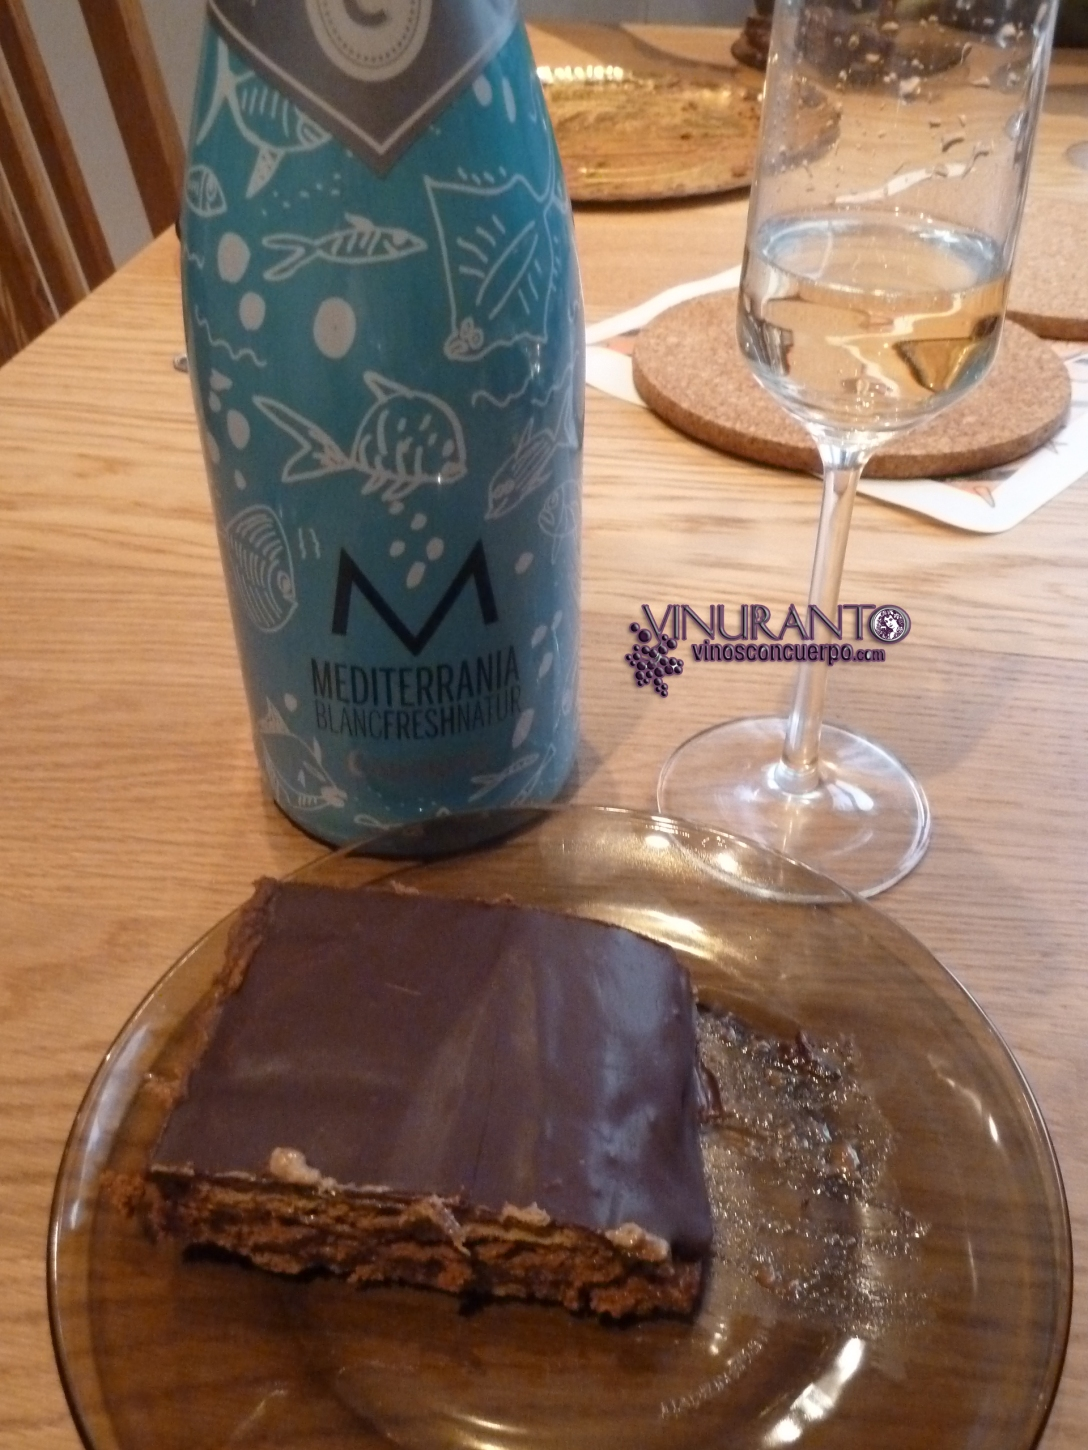 Mediterrania with chocolate and biscuits cake. Delightful!